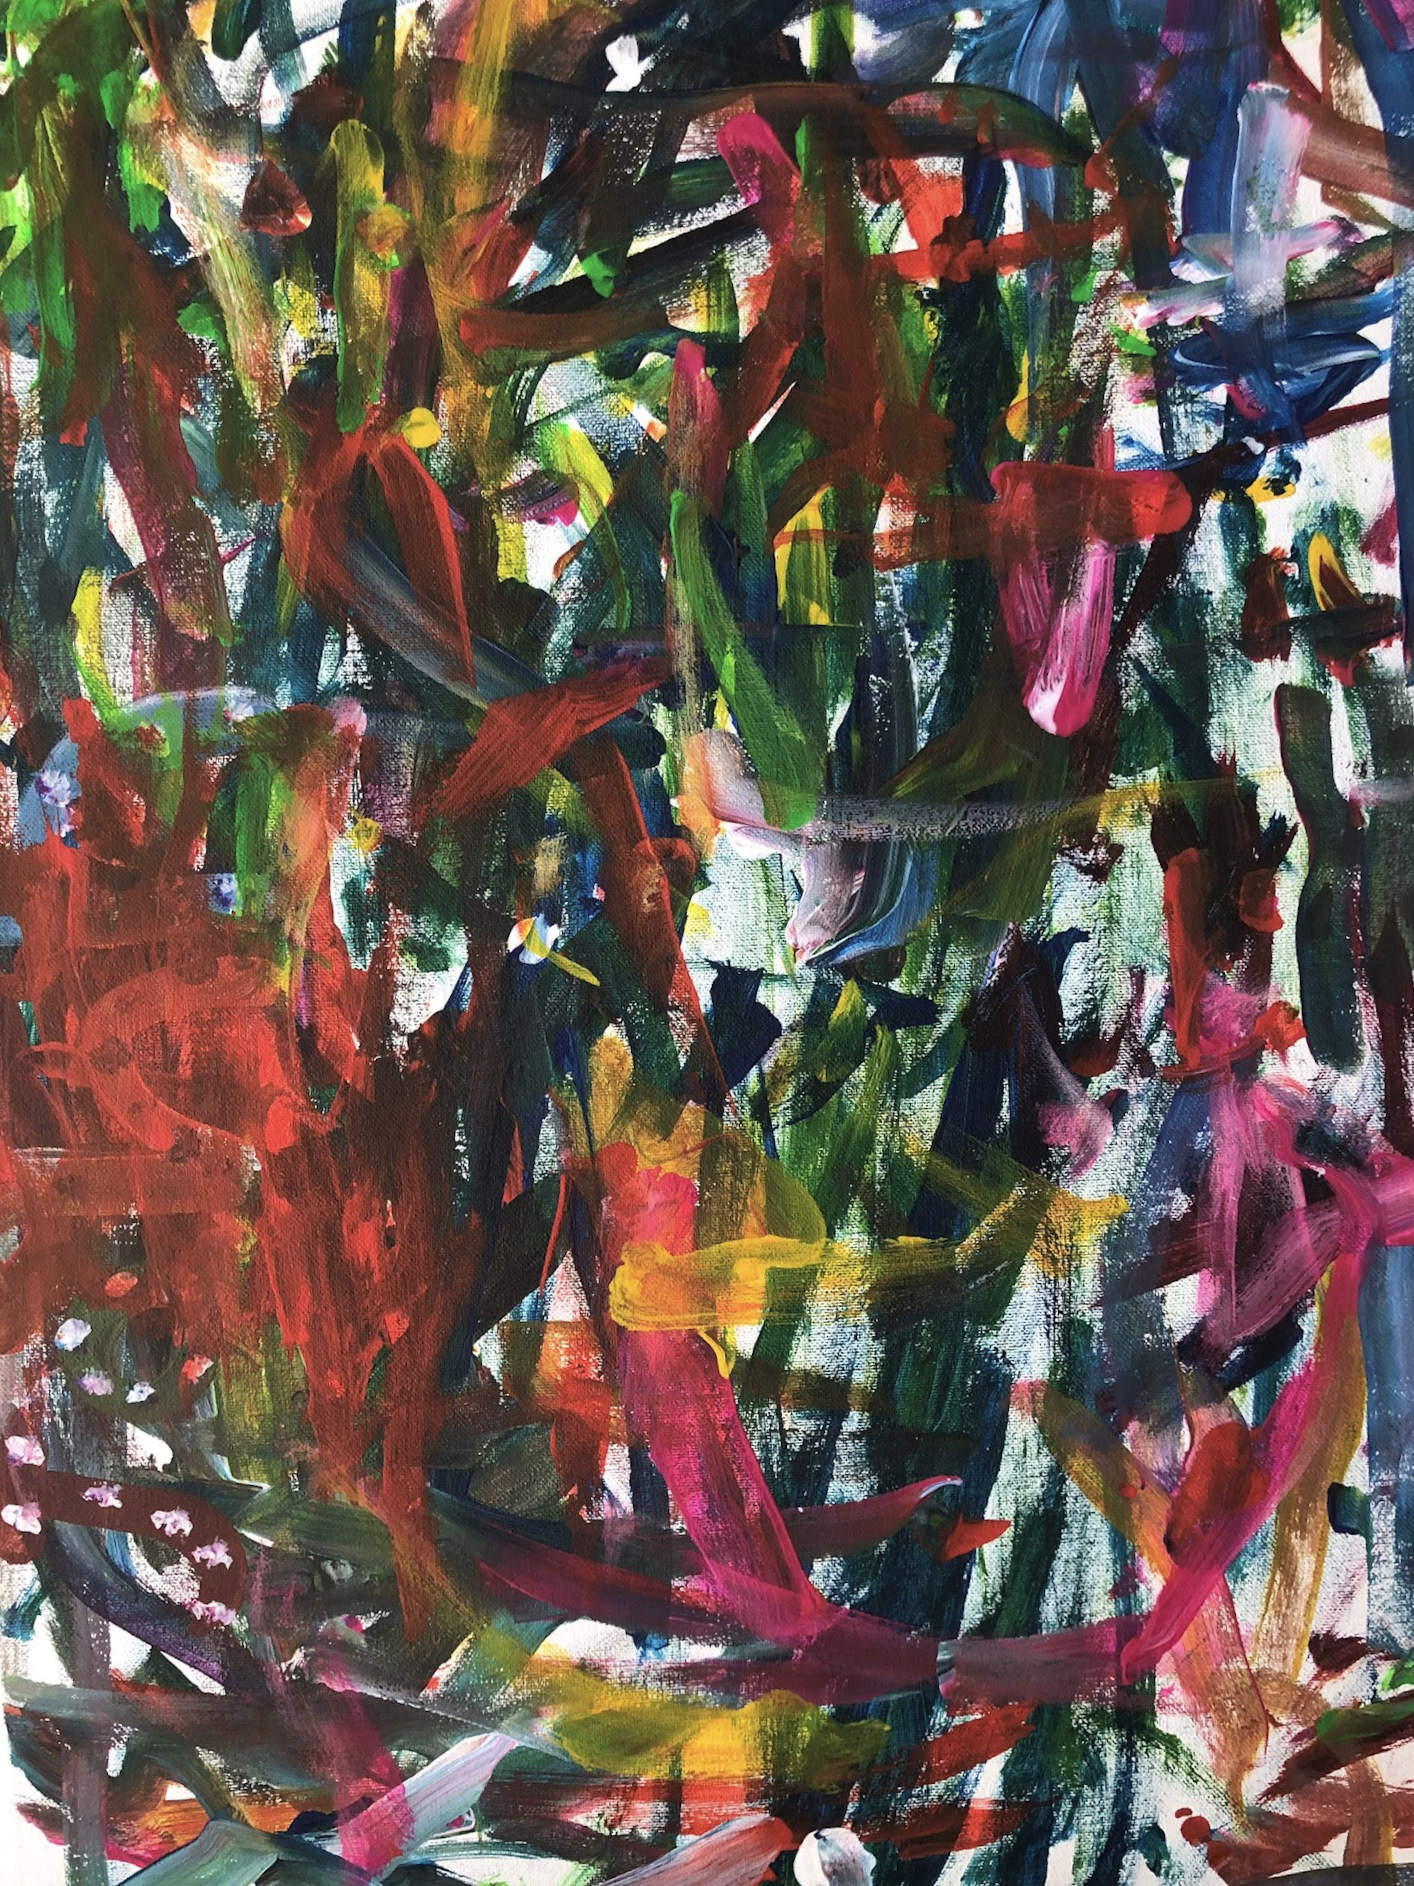 Untitled 600x400 Canvas